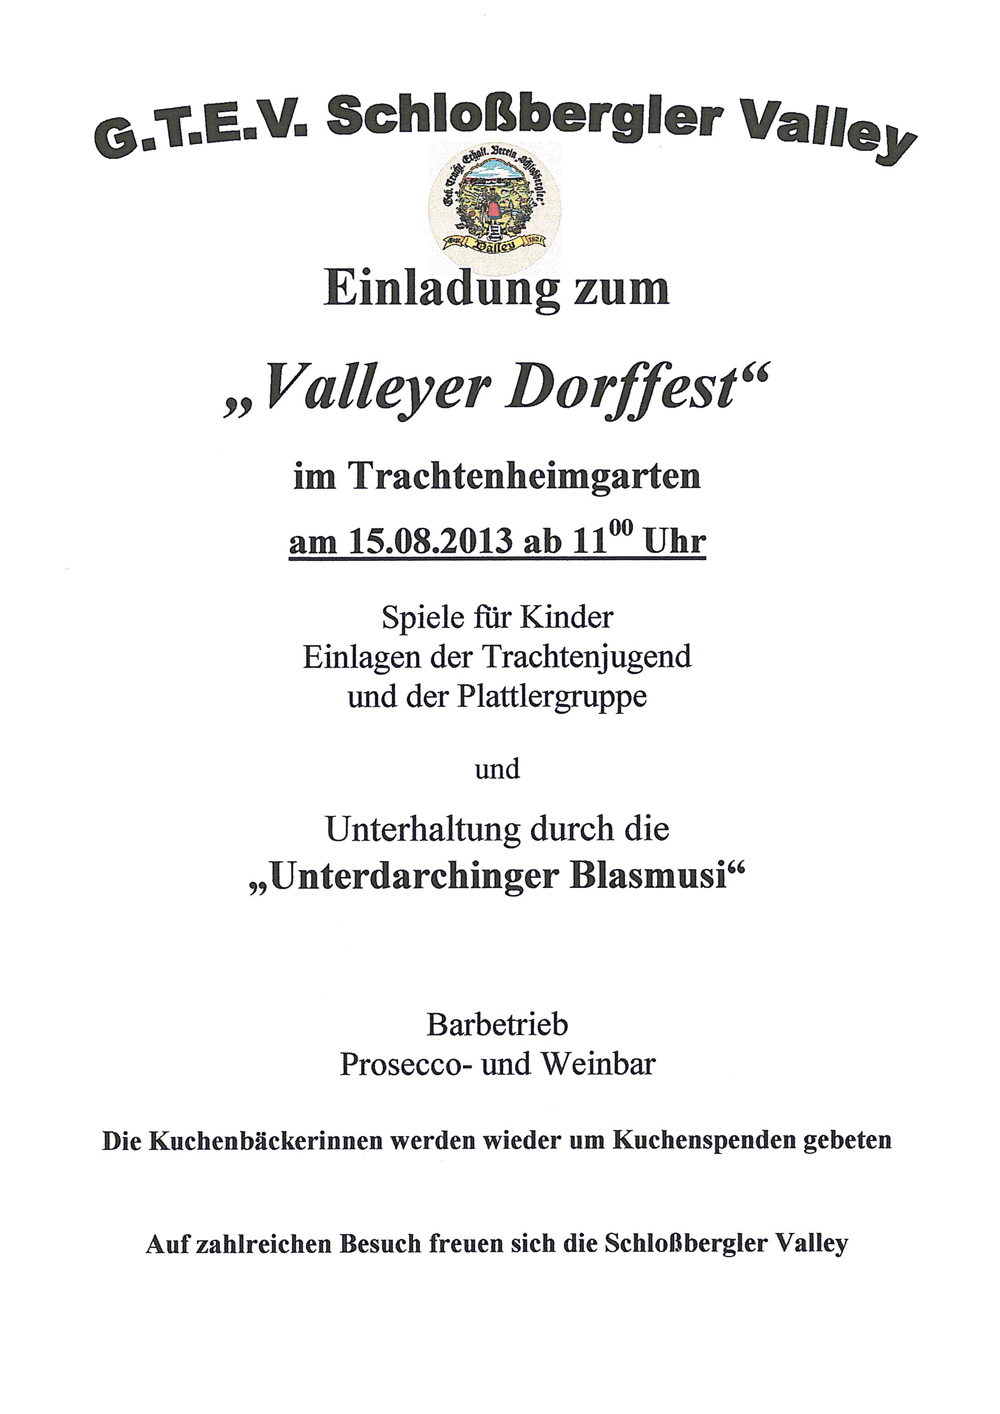 Valleyer Dorffest 2013